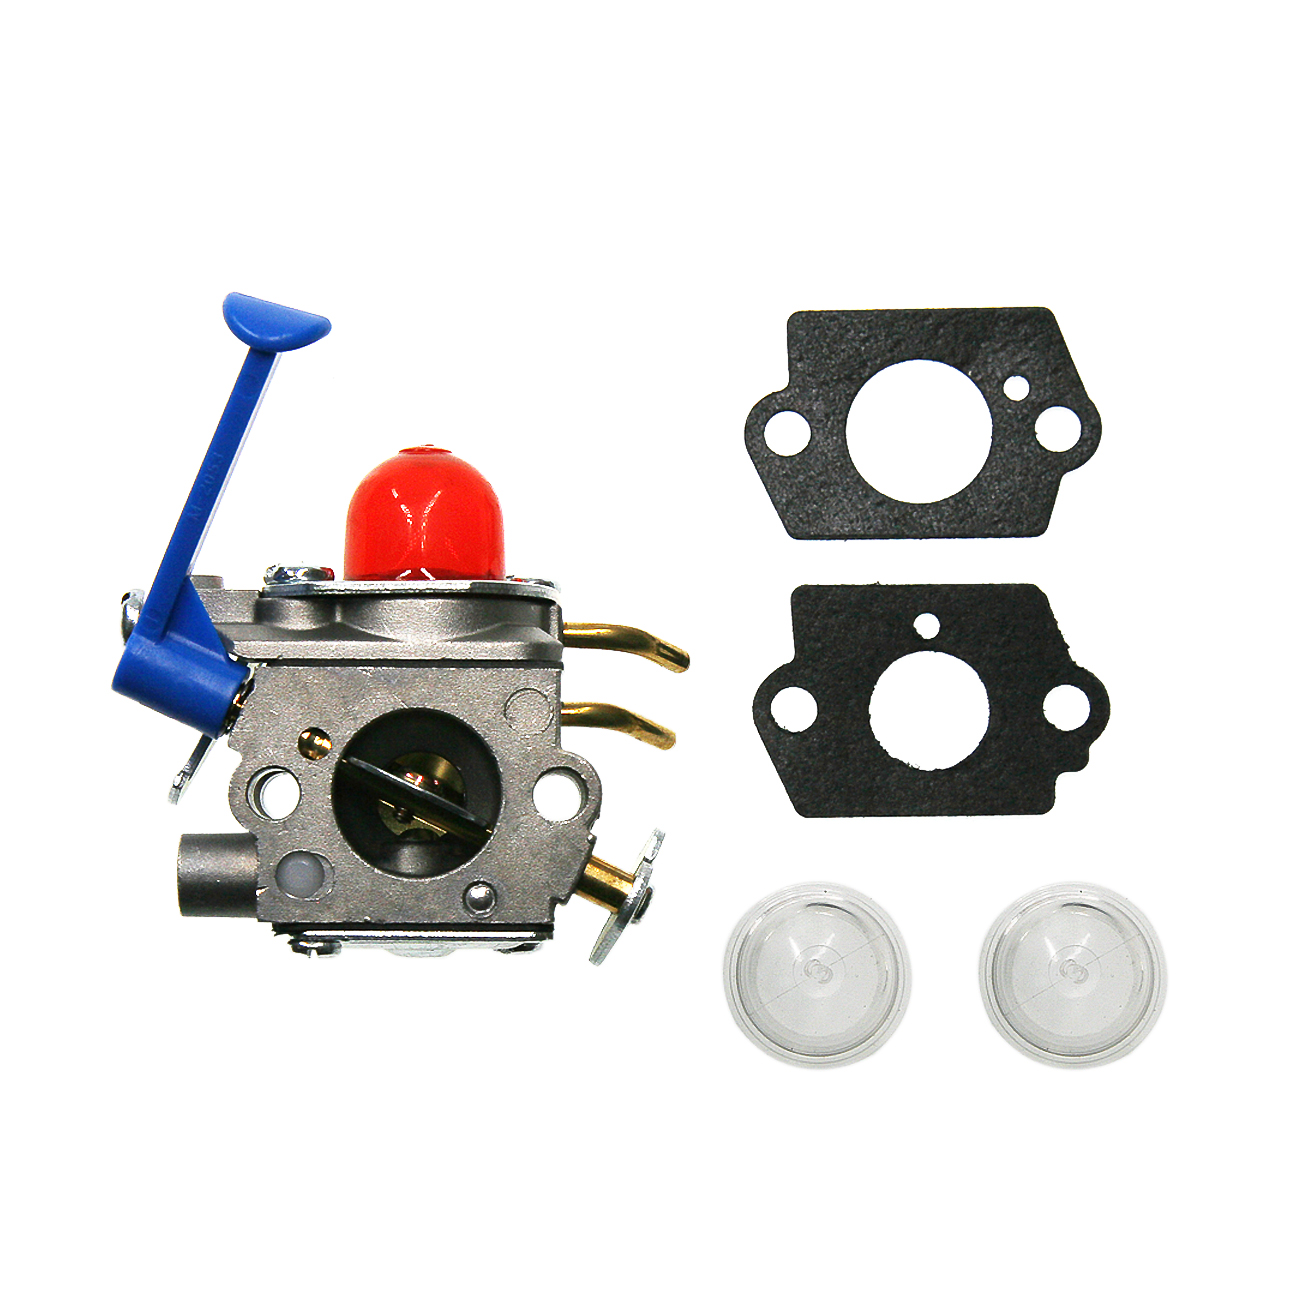 Carburetor For Husqvarna 124L 125L 125LD 128C 128CD 128LD #545081848 C1Q-W40A